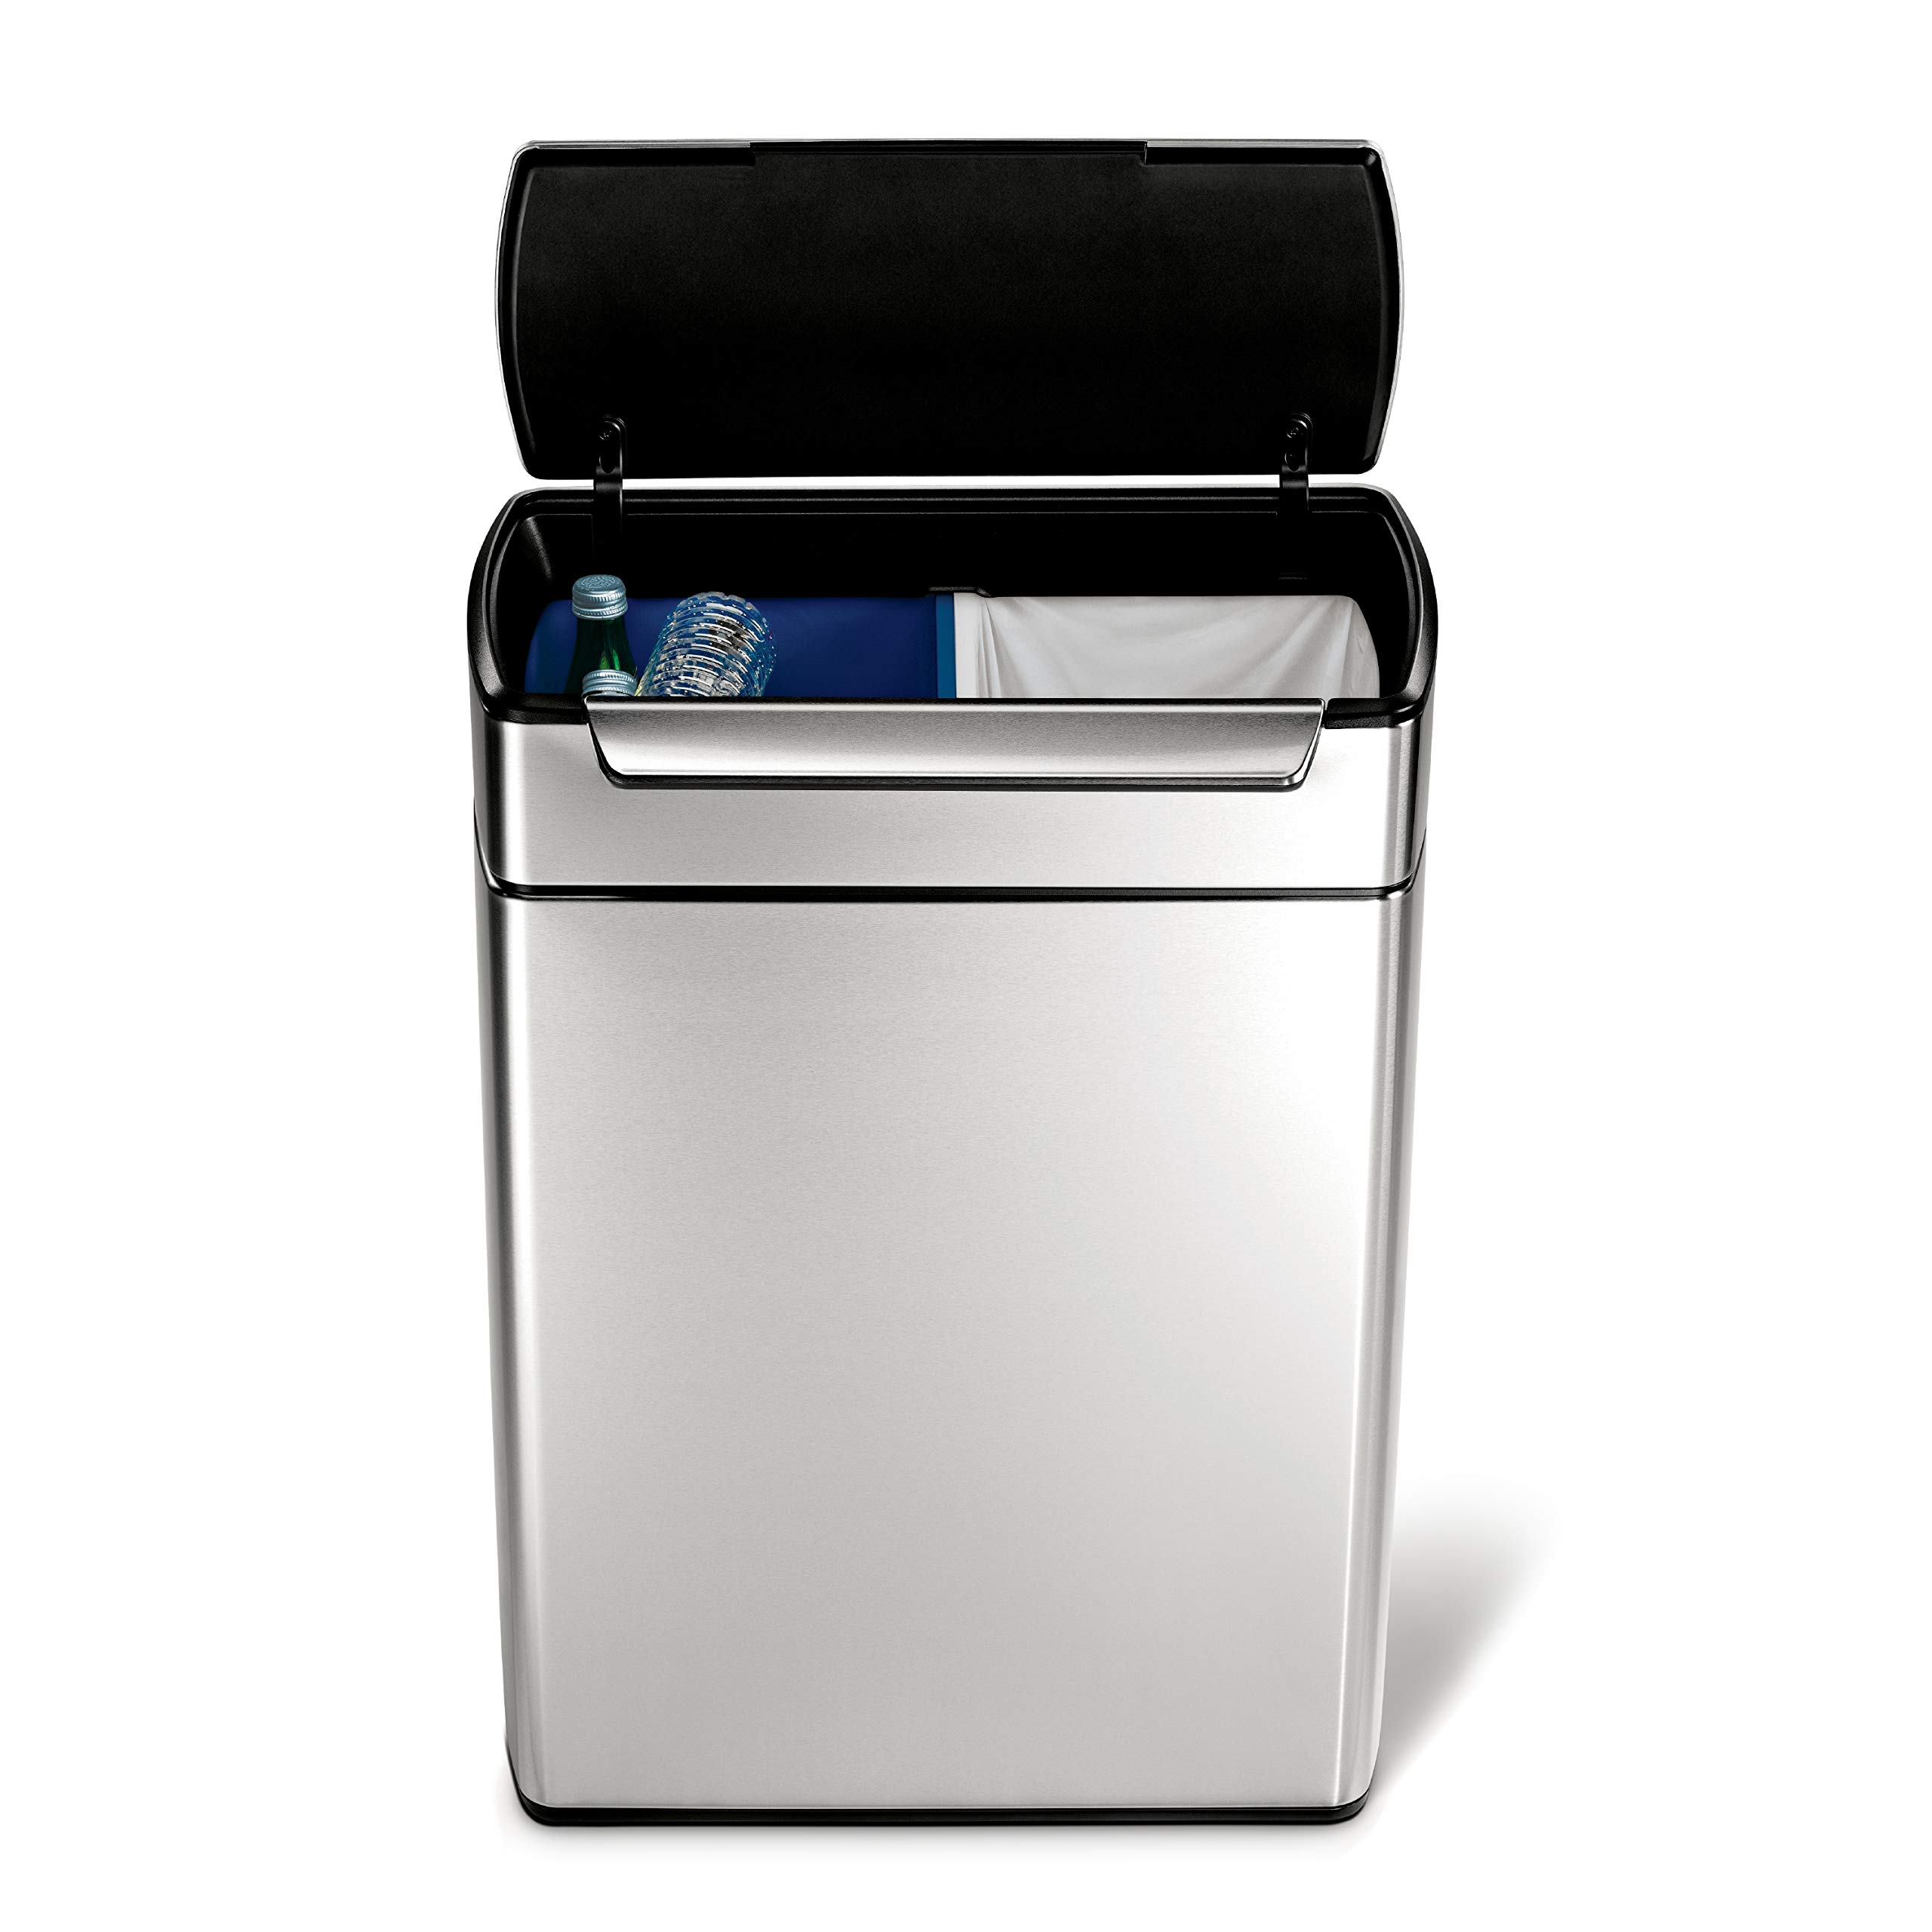 simplehuman 48 Liter / 12.7 Gallon Stainless Steel Touch-Bar Kitchen Dual Compartment Trash Can Recycler, Brushed Stainless Steel by simplehuman